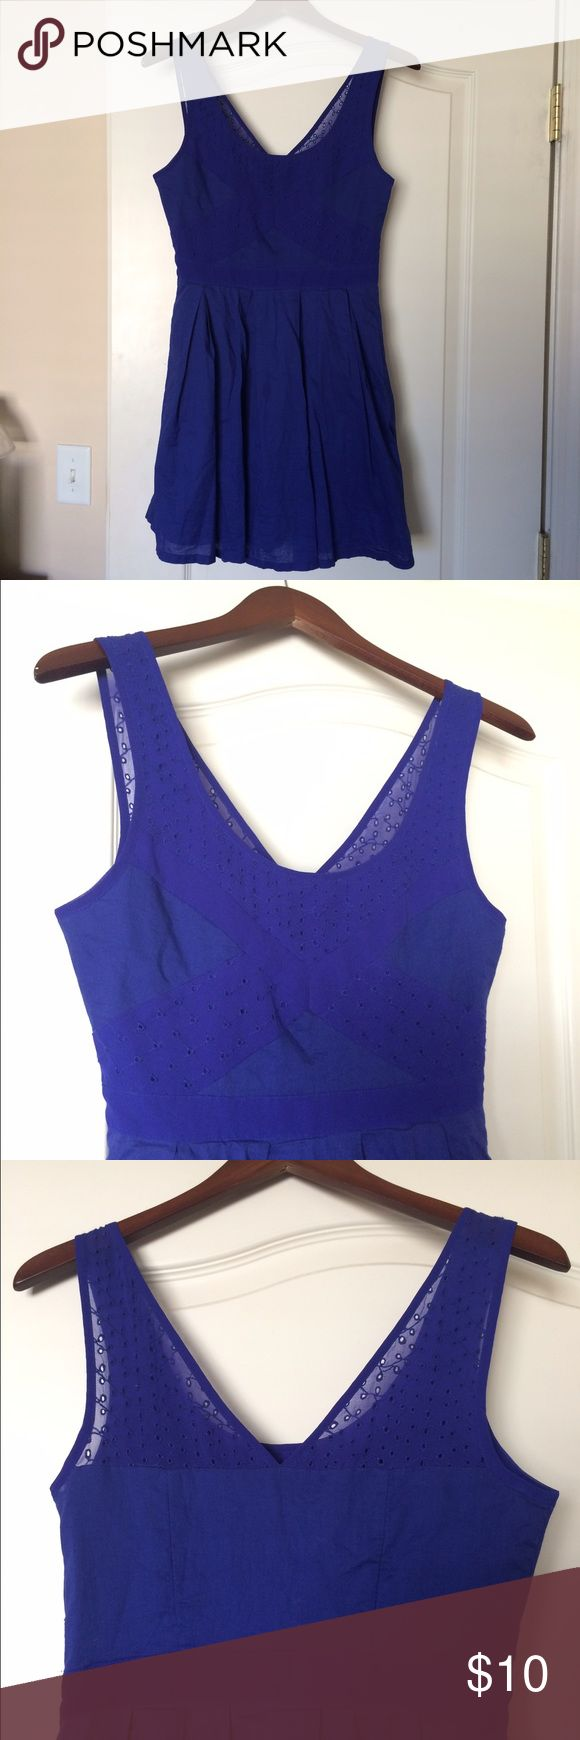 American Eagle Sundress Violet fit & flair dress by American Eagle. Perfect for spring! Juniors sizing - fits more like a women's size 6. American Eagle Outfitters Dresses Mini